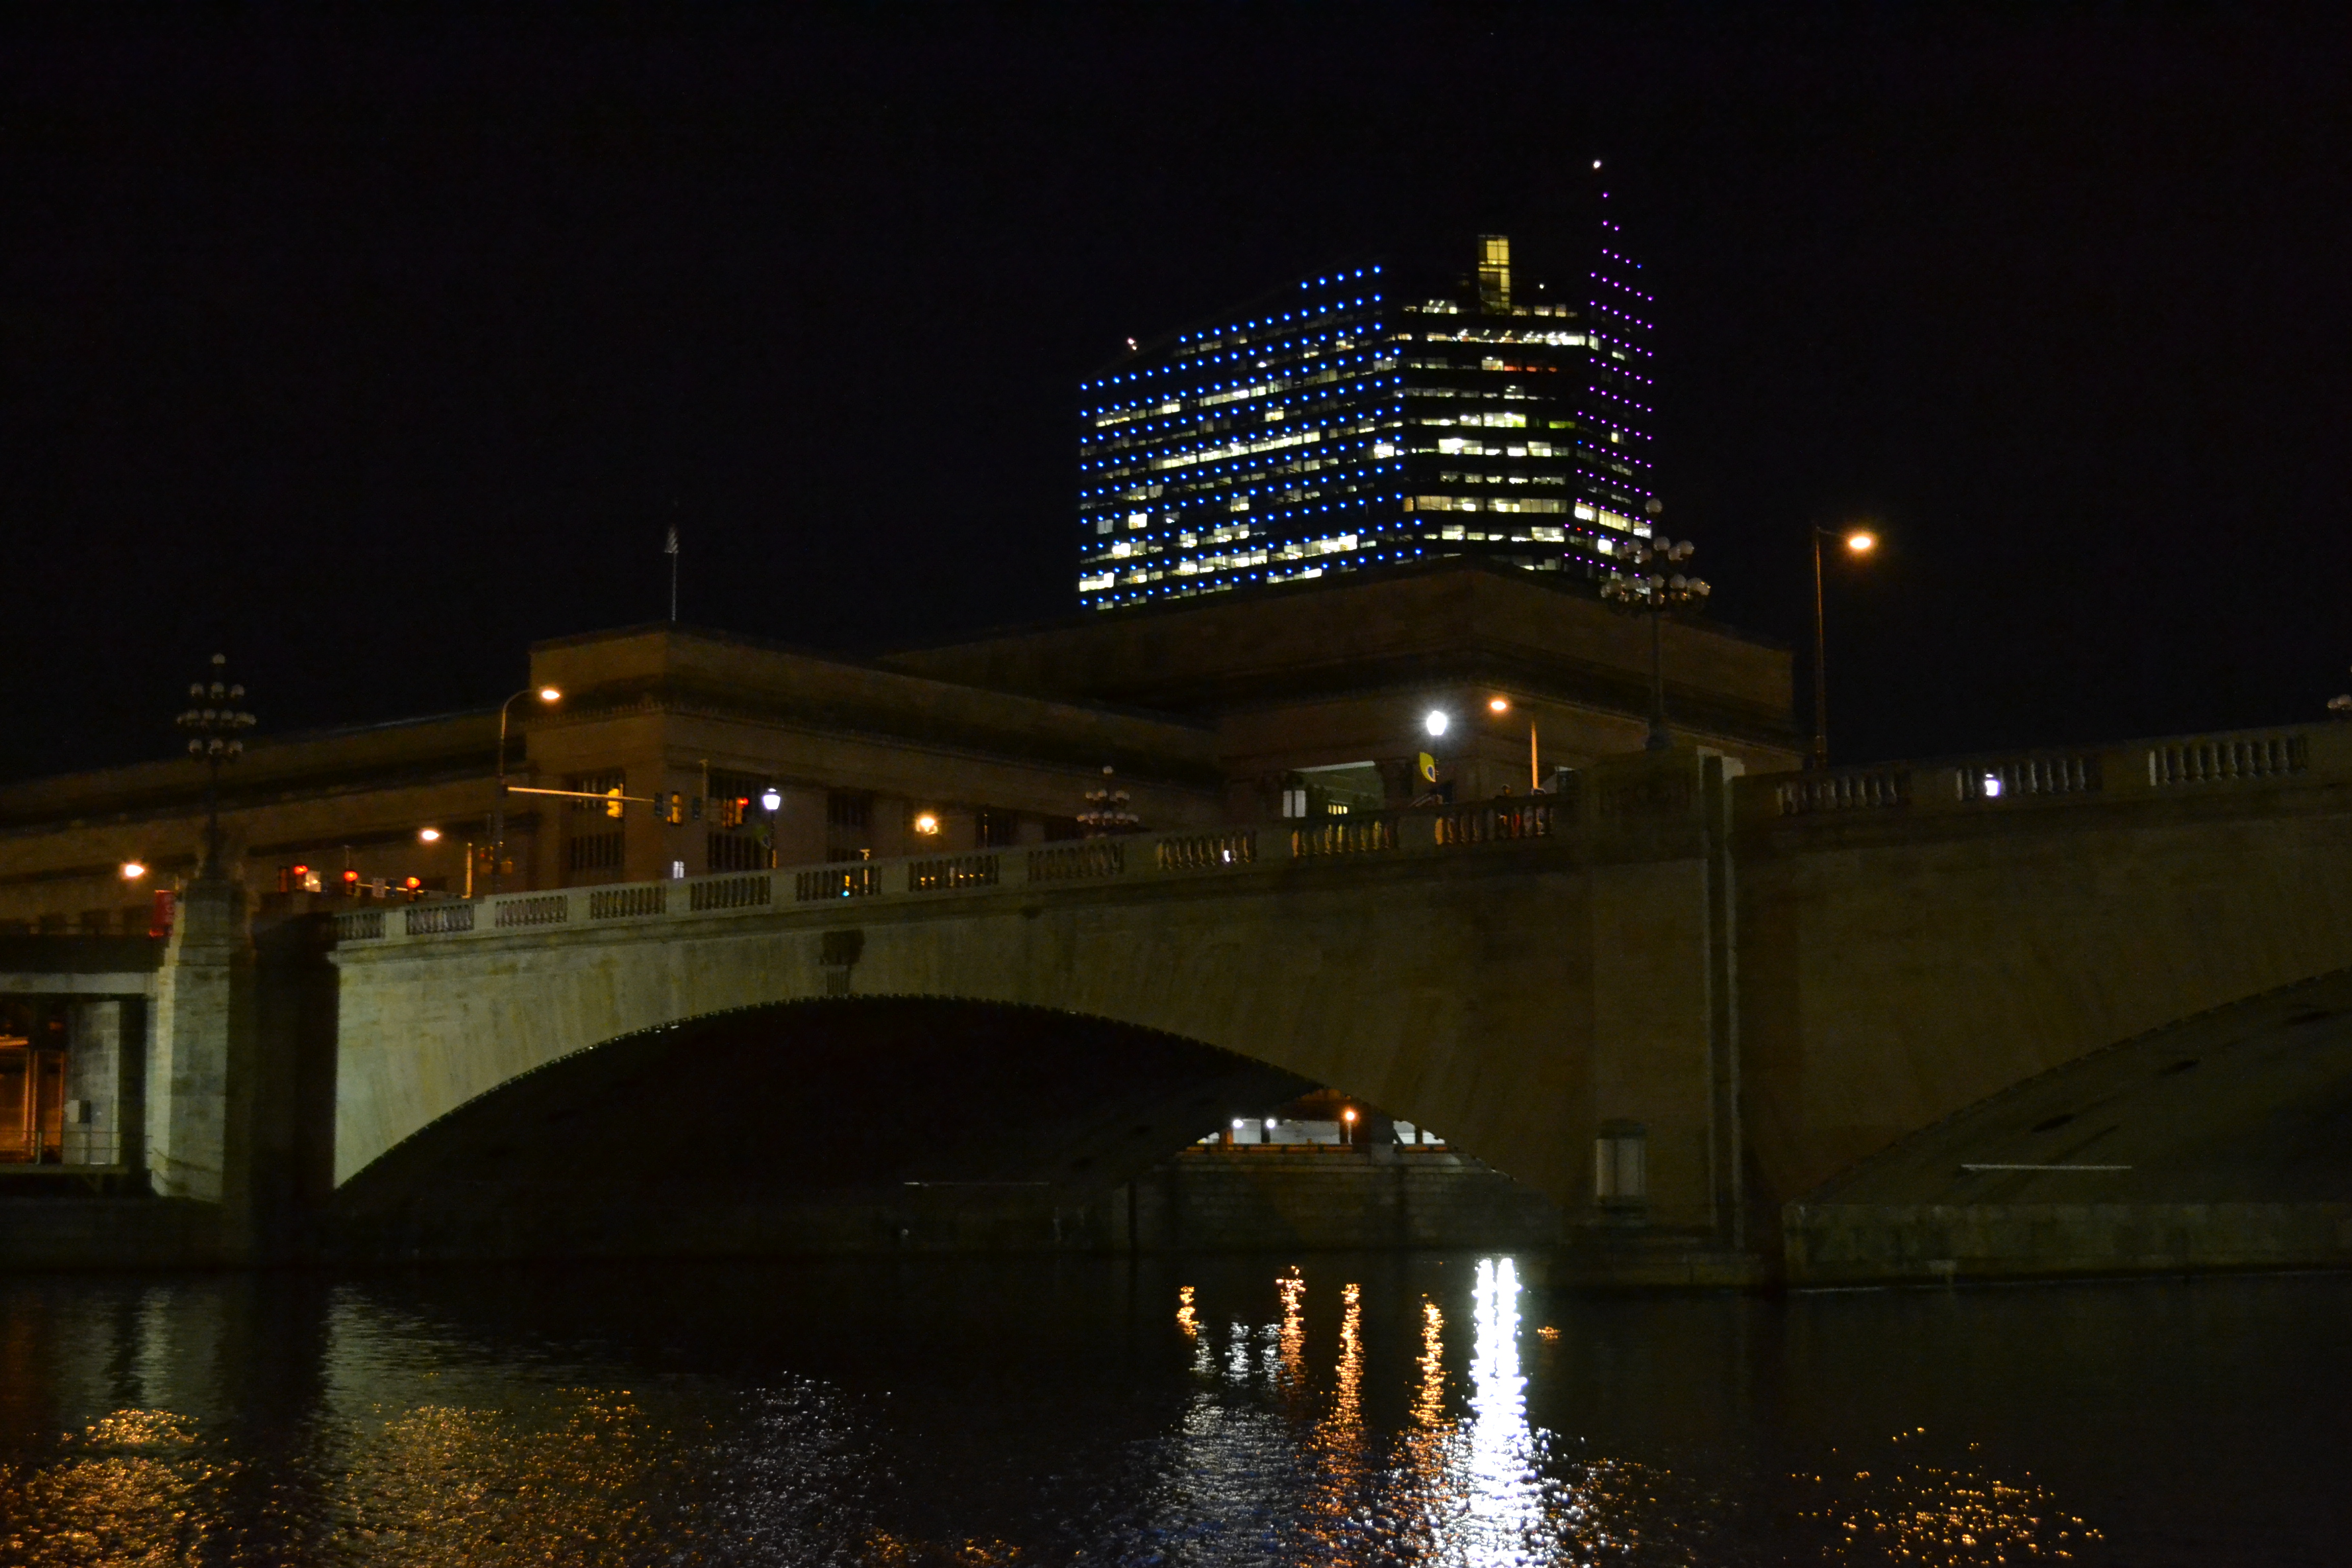 30th Street Bridge with 30th Street Station hidden in the background, pre-lighting